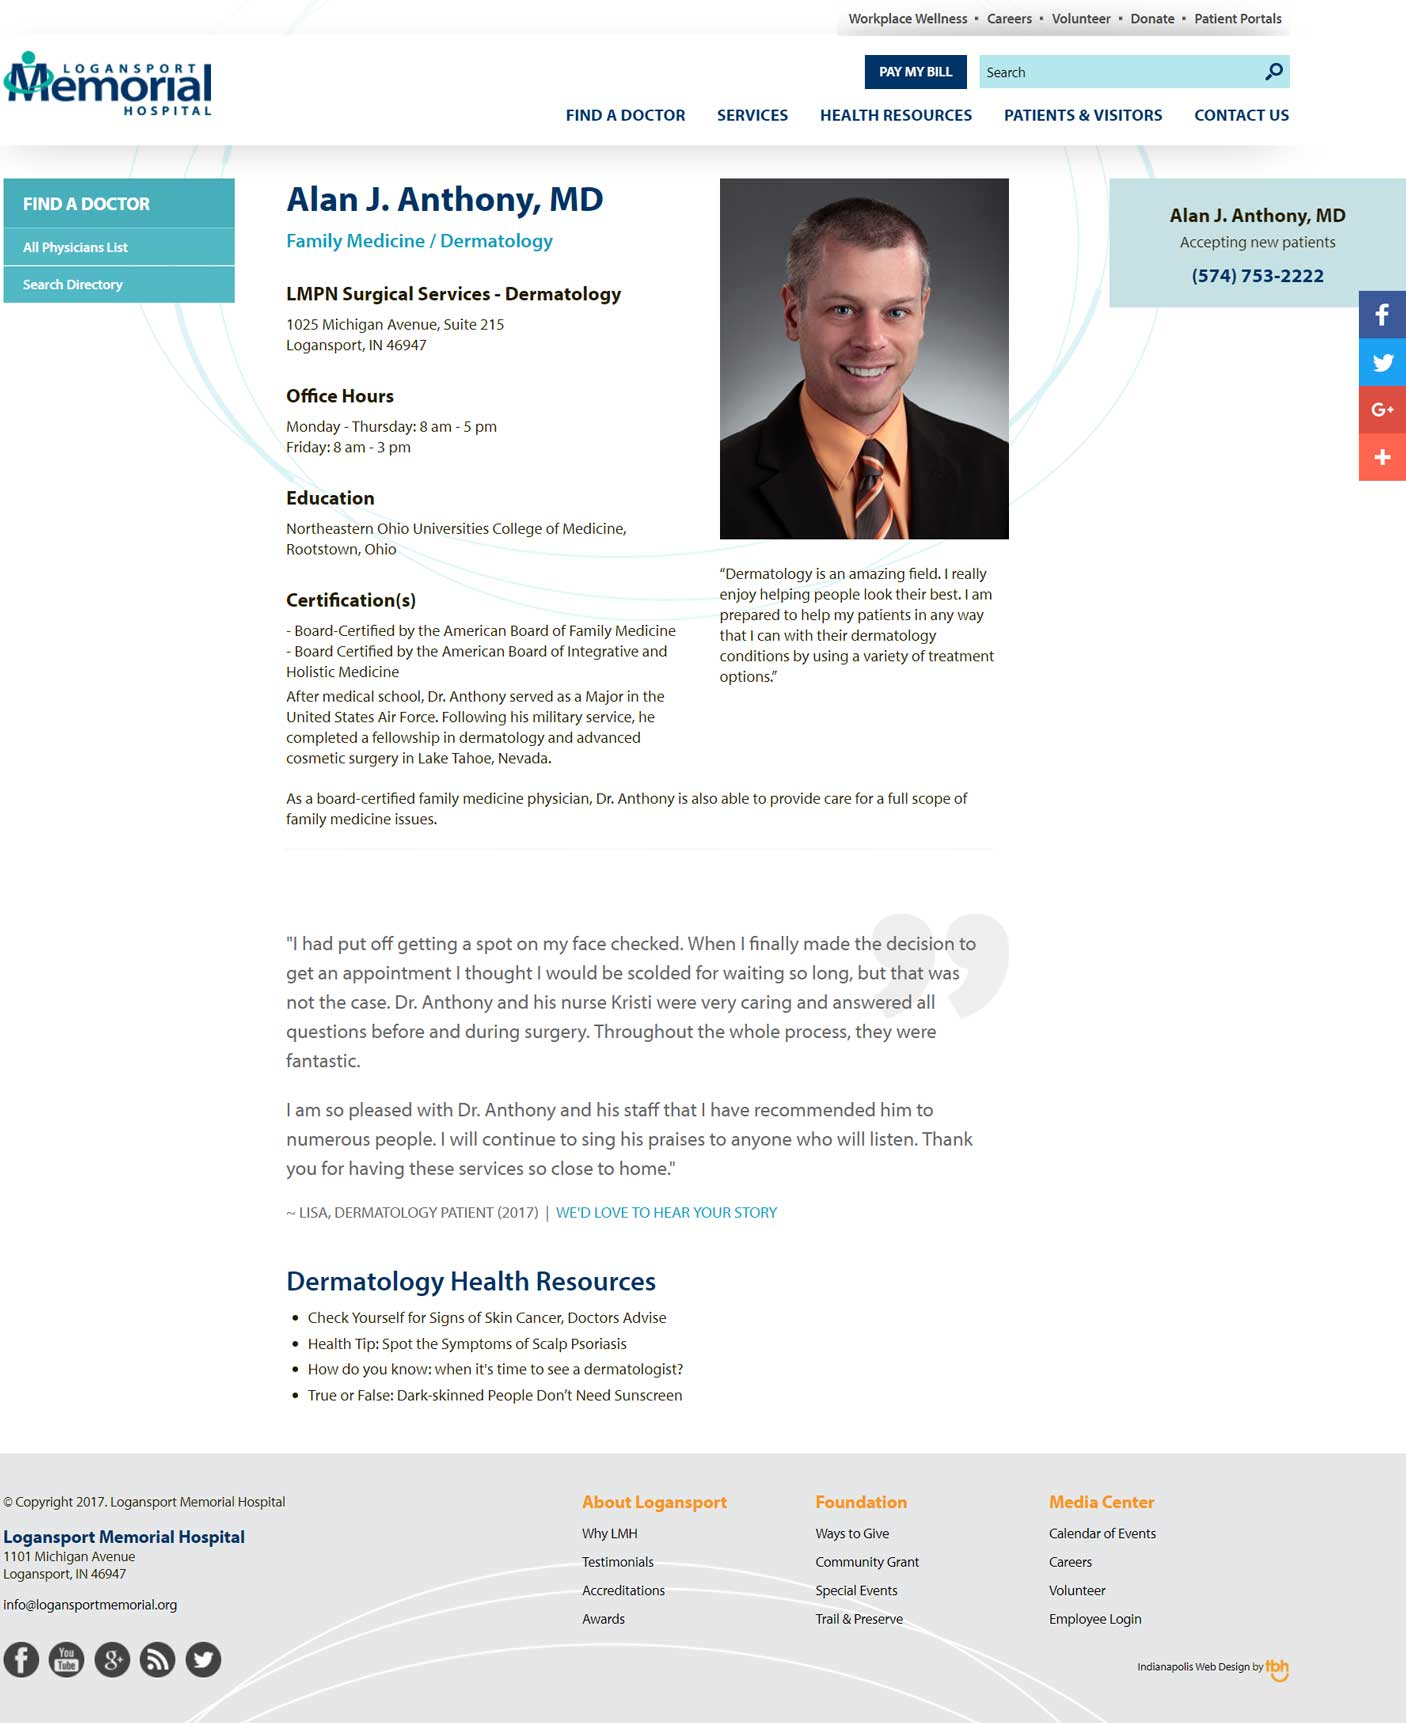 Physician Profile Page